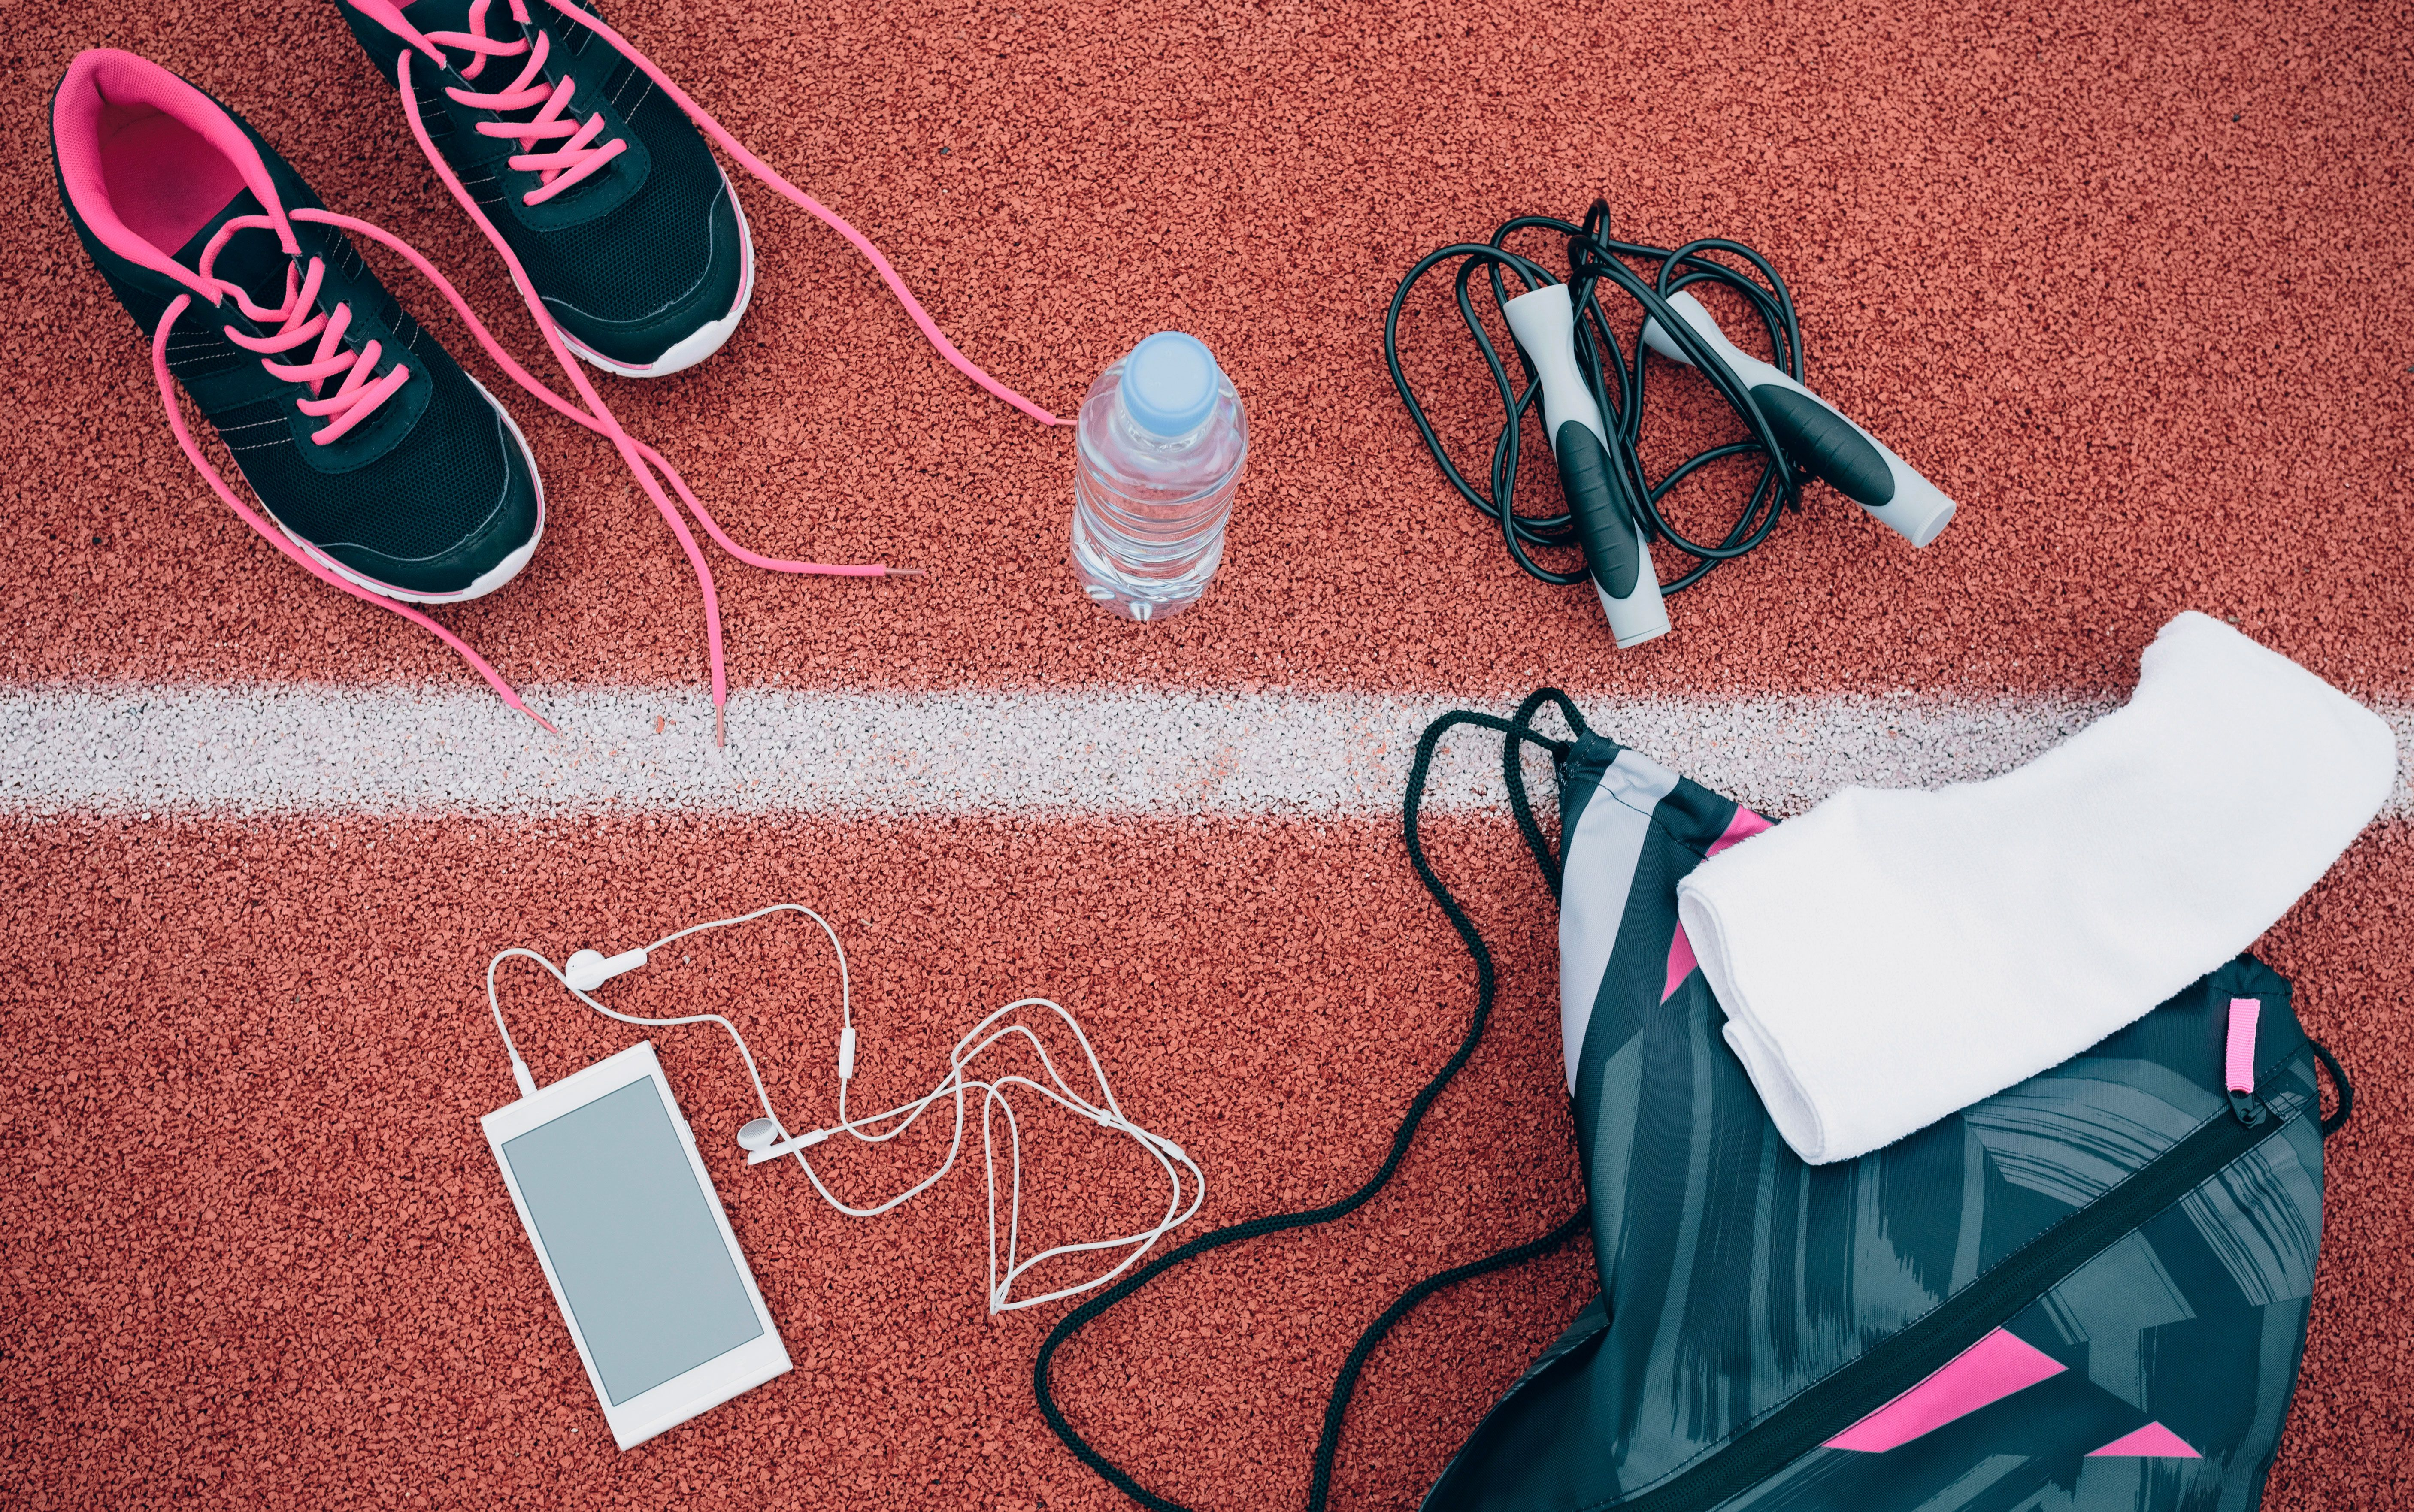 6 ways to change your running style to get closer to your goals